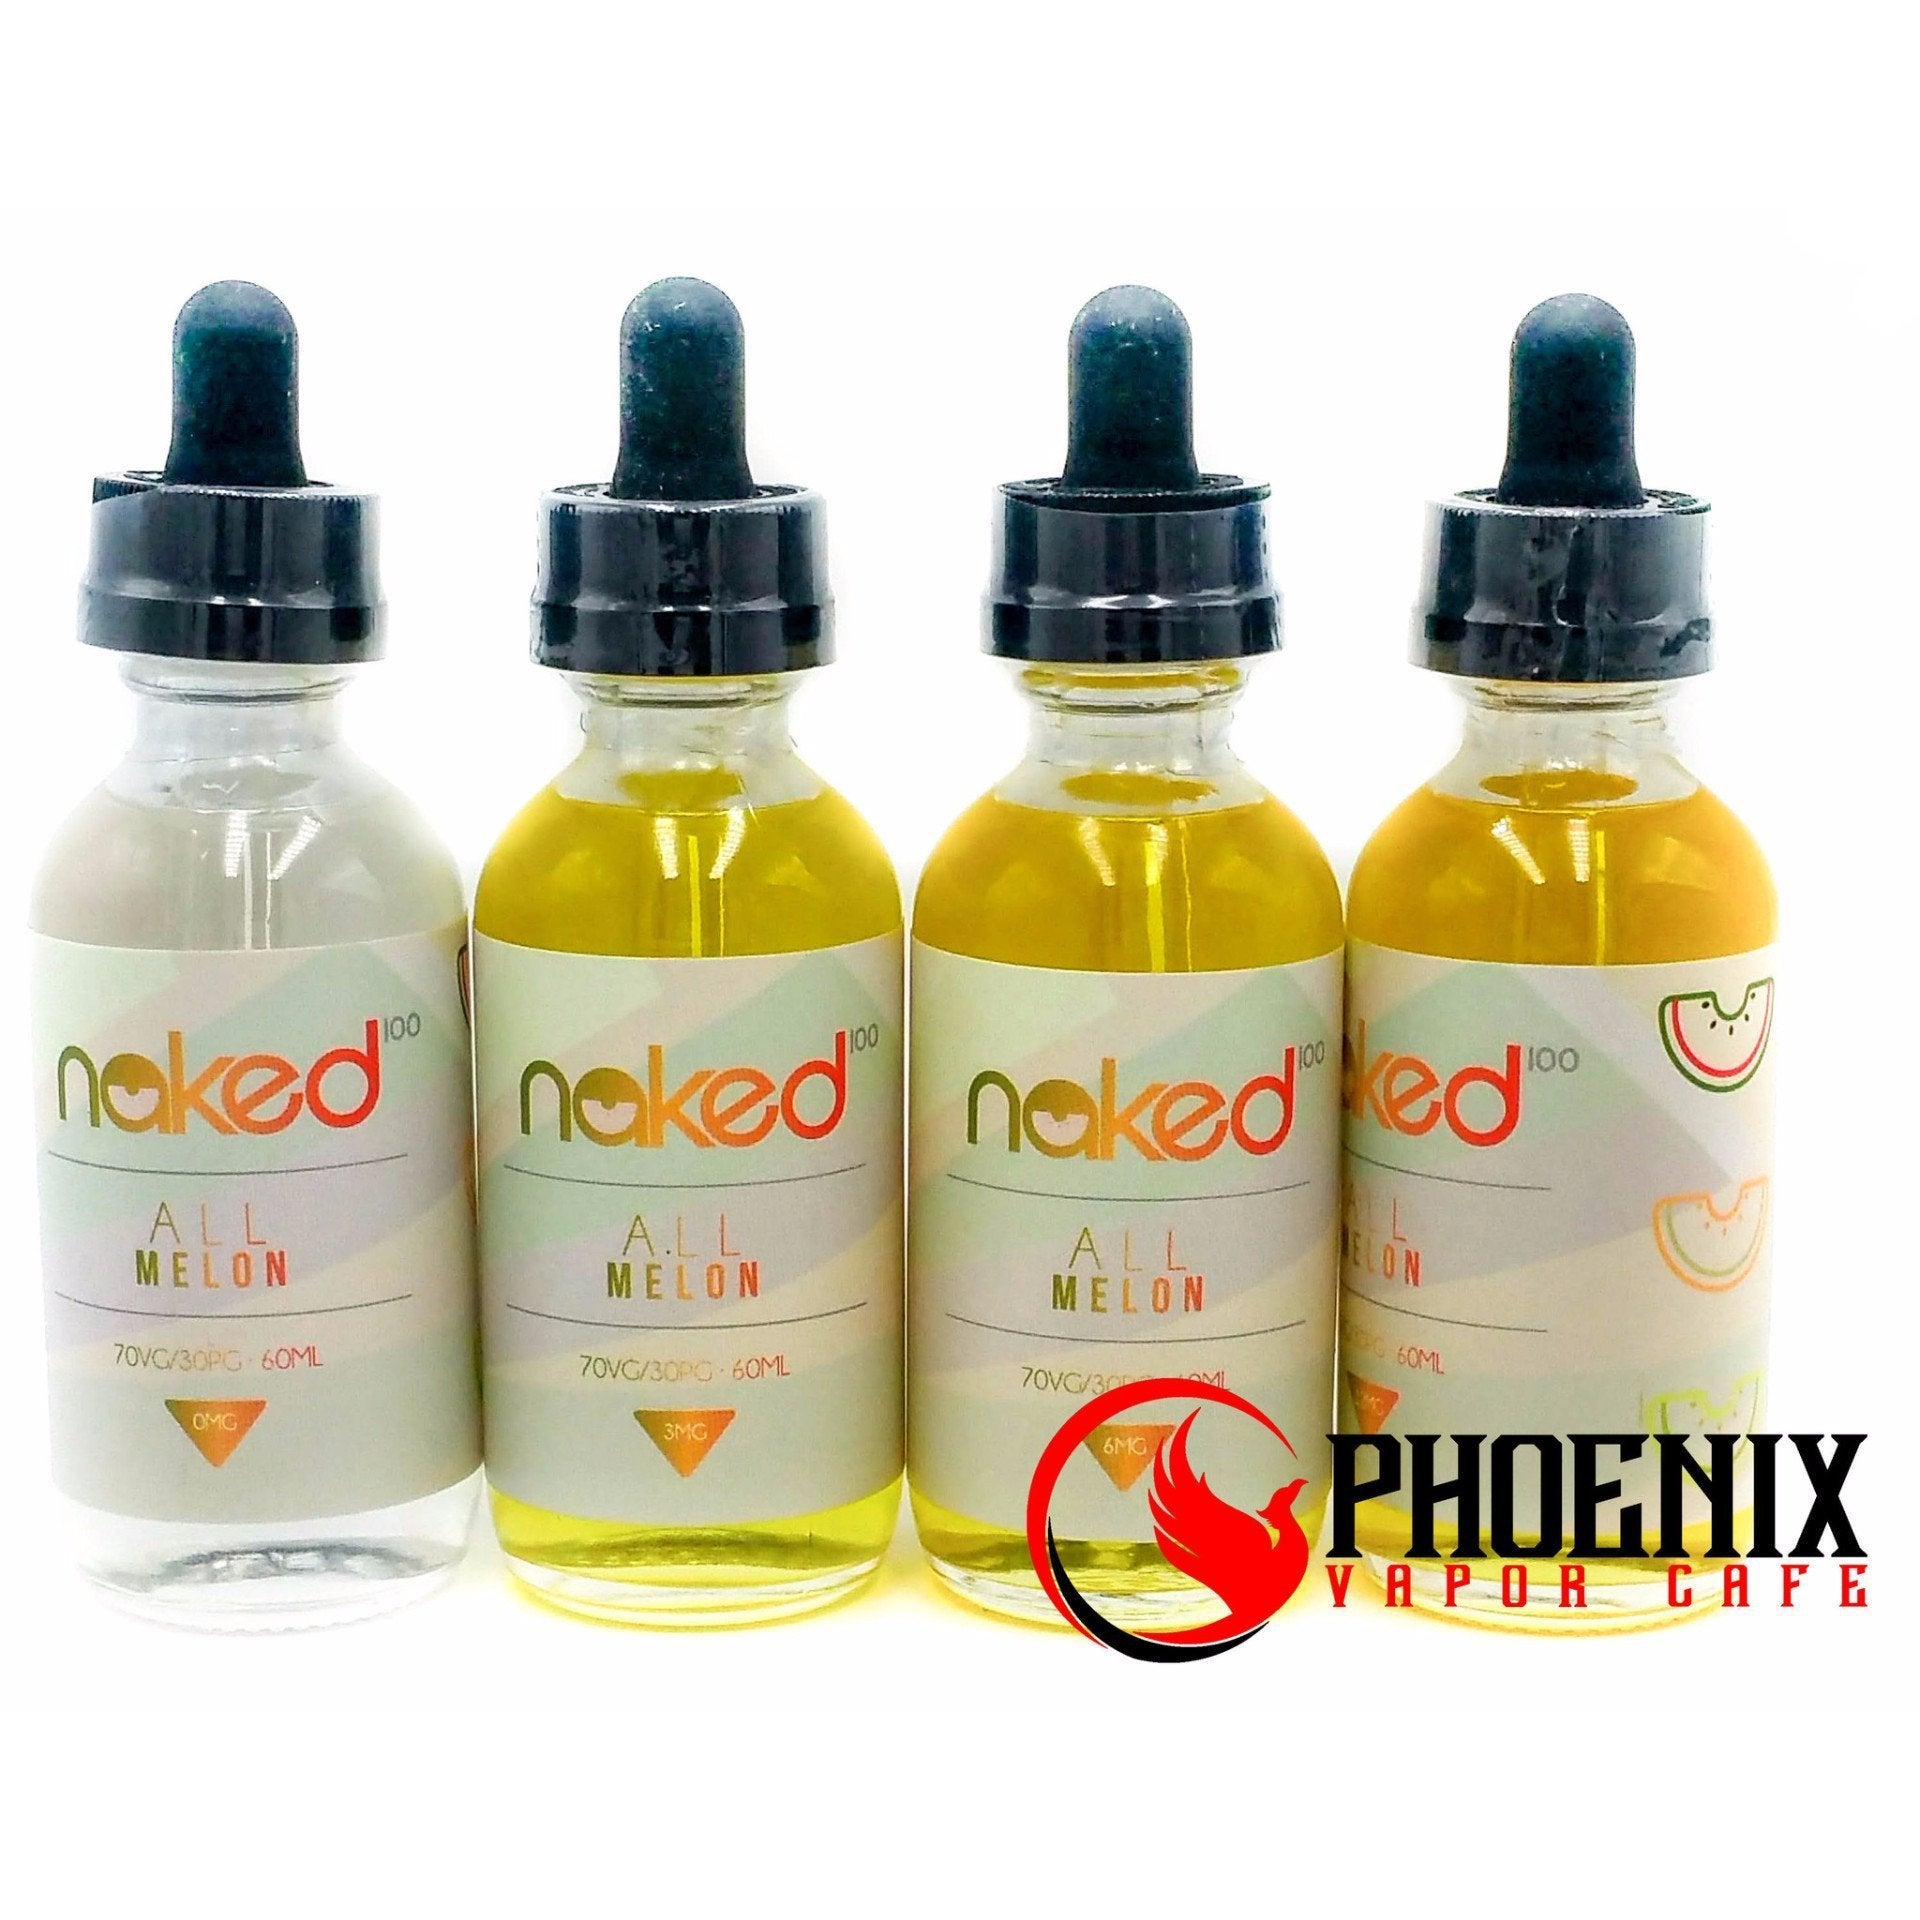 Naked E-Liquid 60 ml / 0 mg Naked All Melon